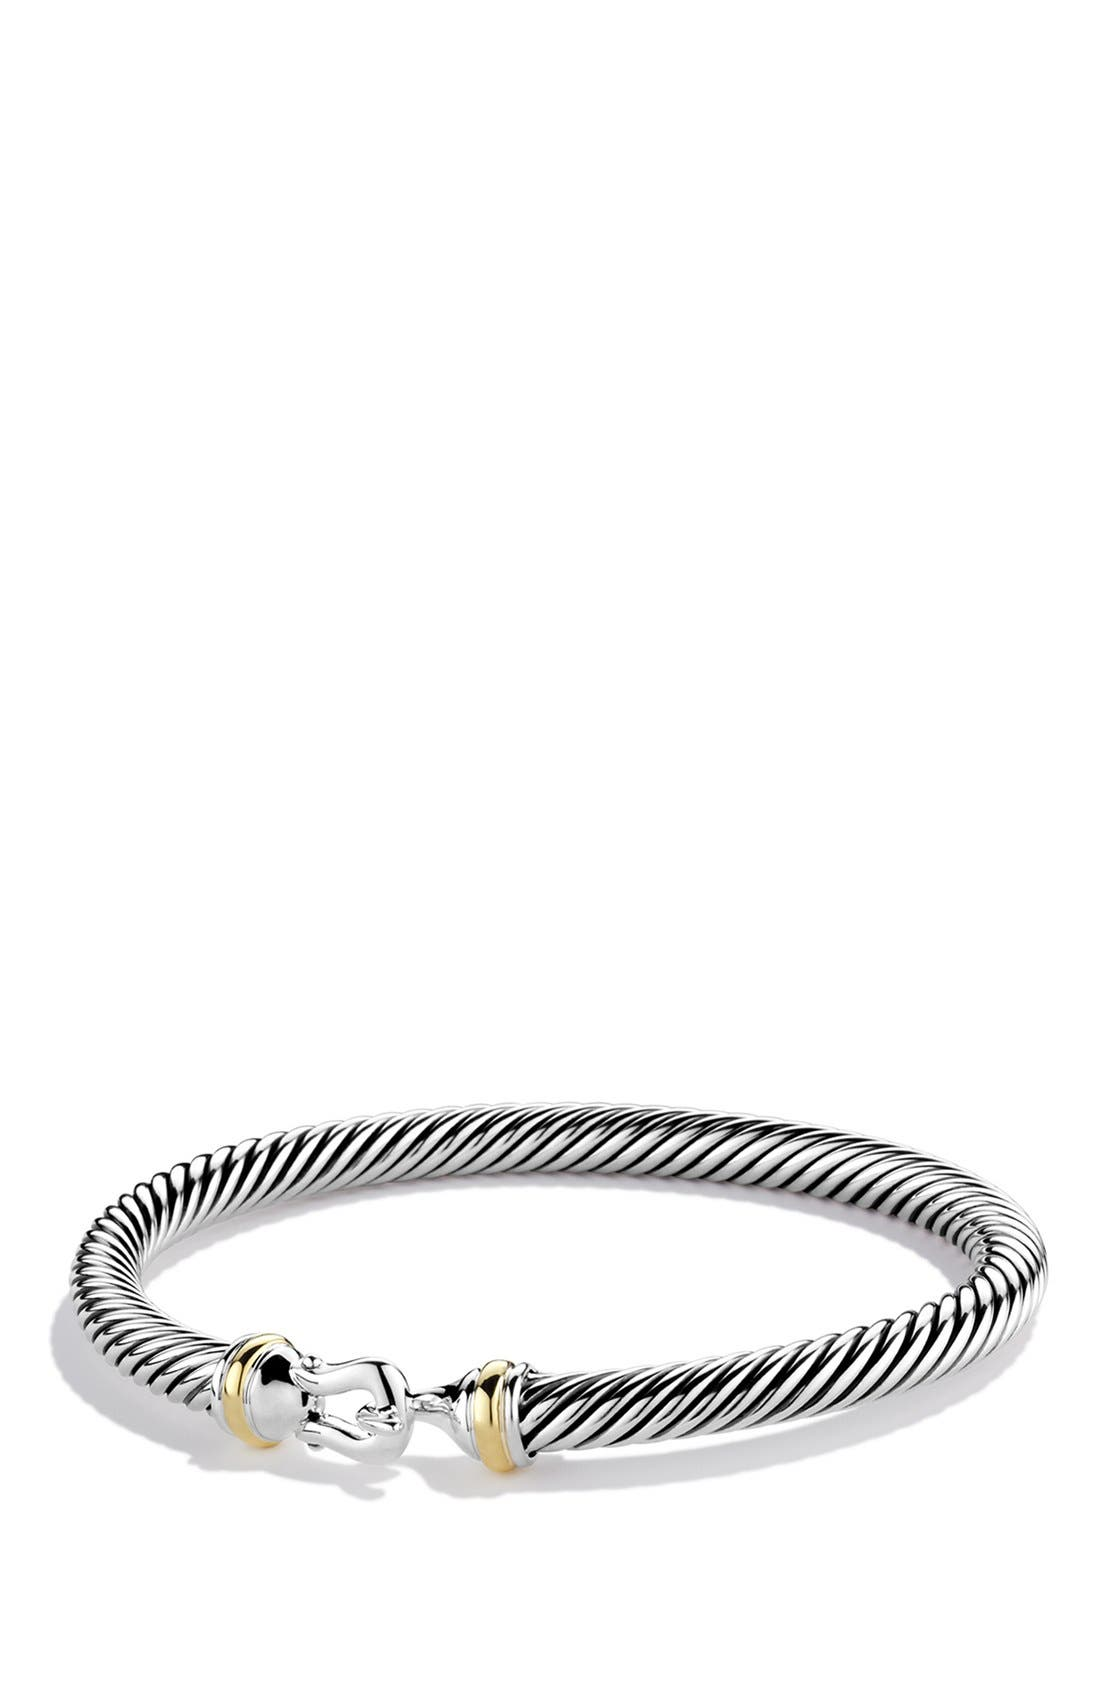 Alternate Image 1 Selected - David Yurman Cable Classic Buckle Bracelet with 18K Gold, 5mm